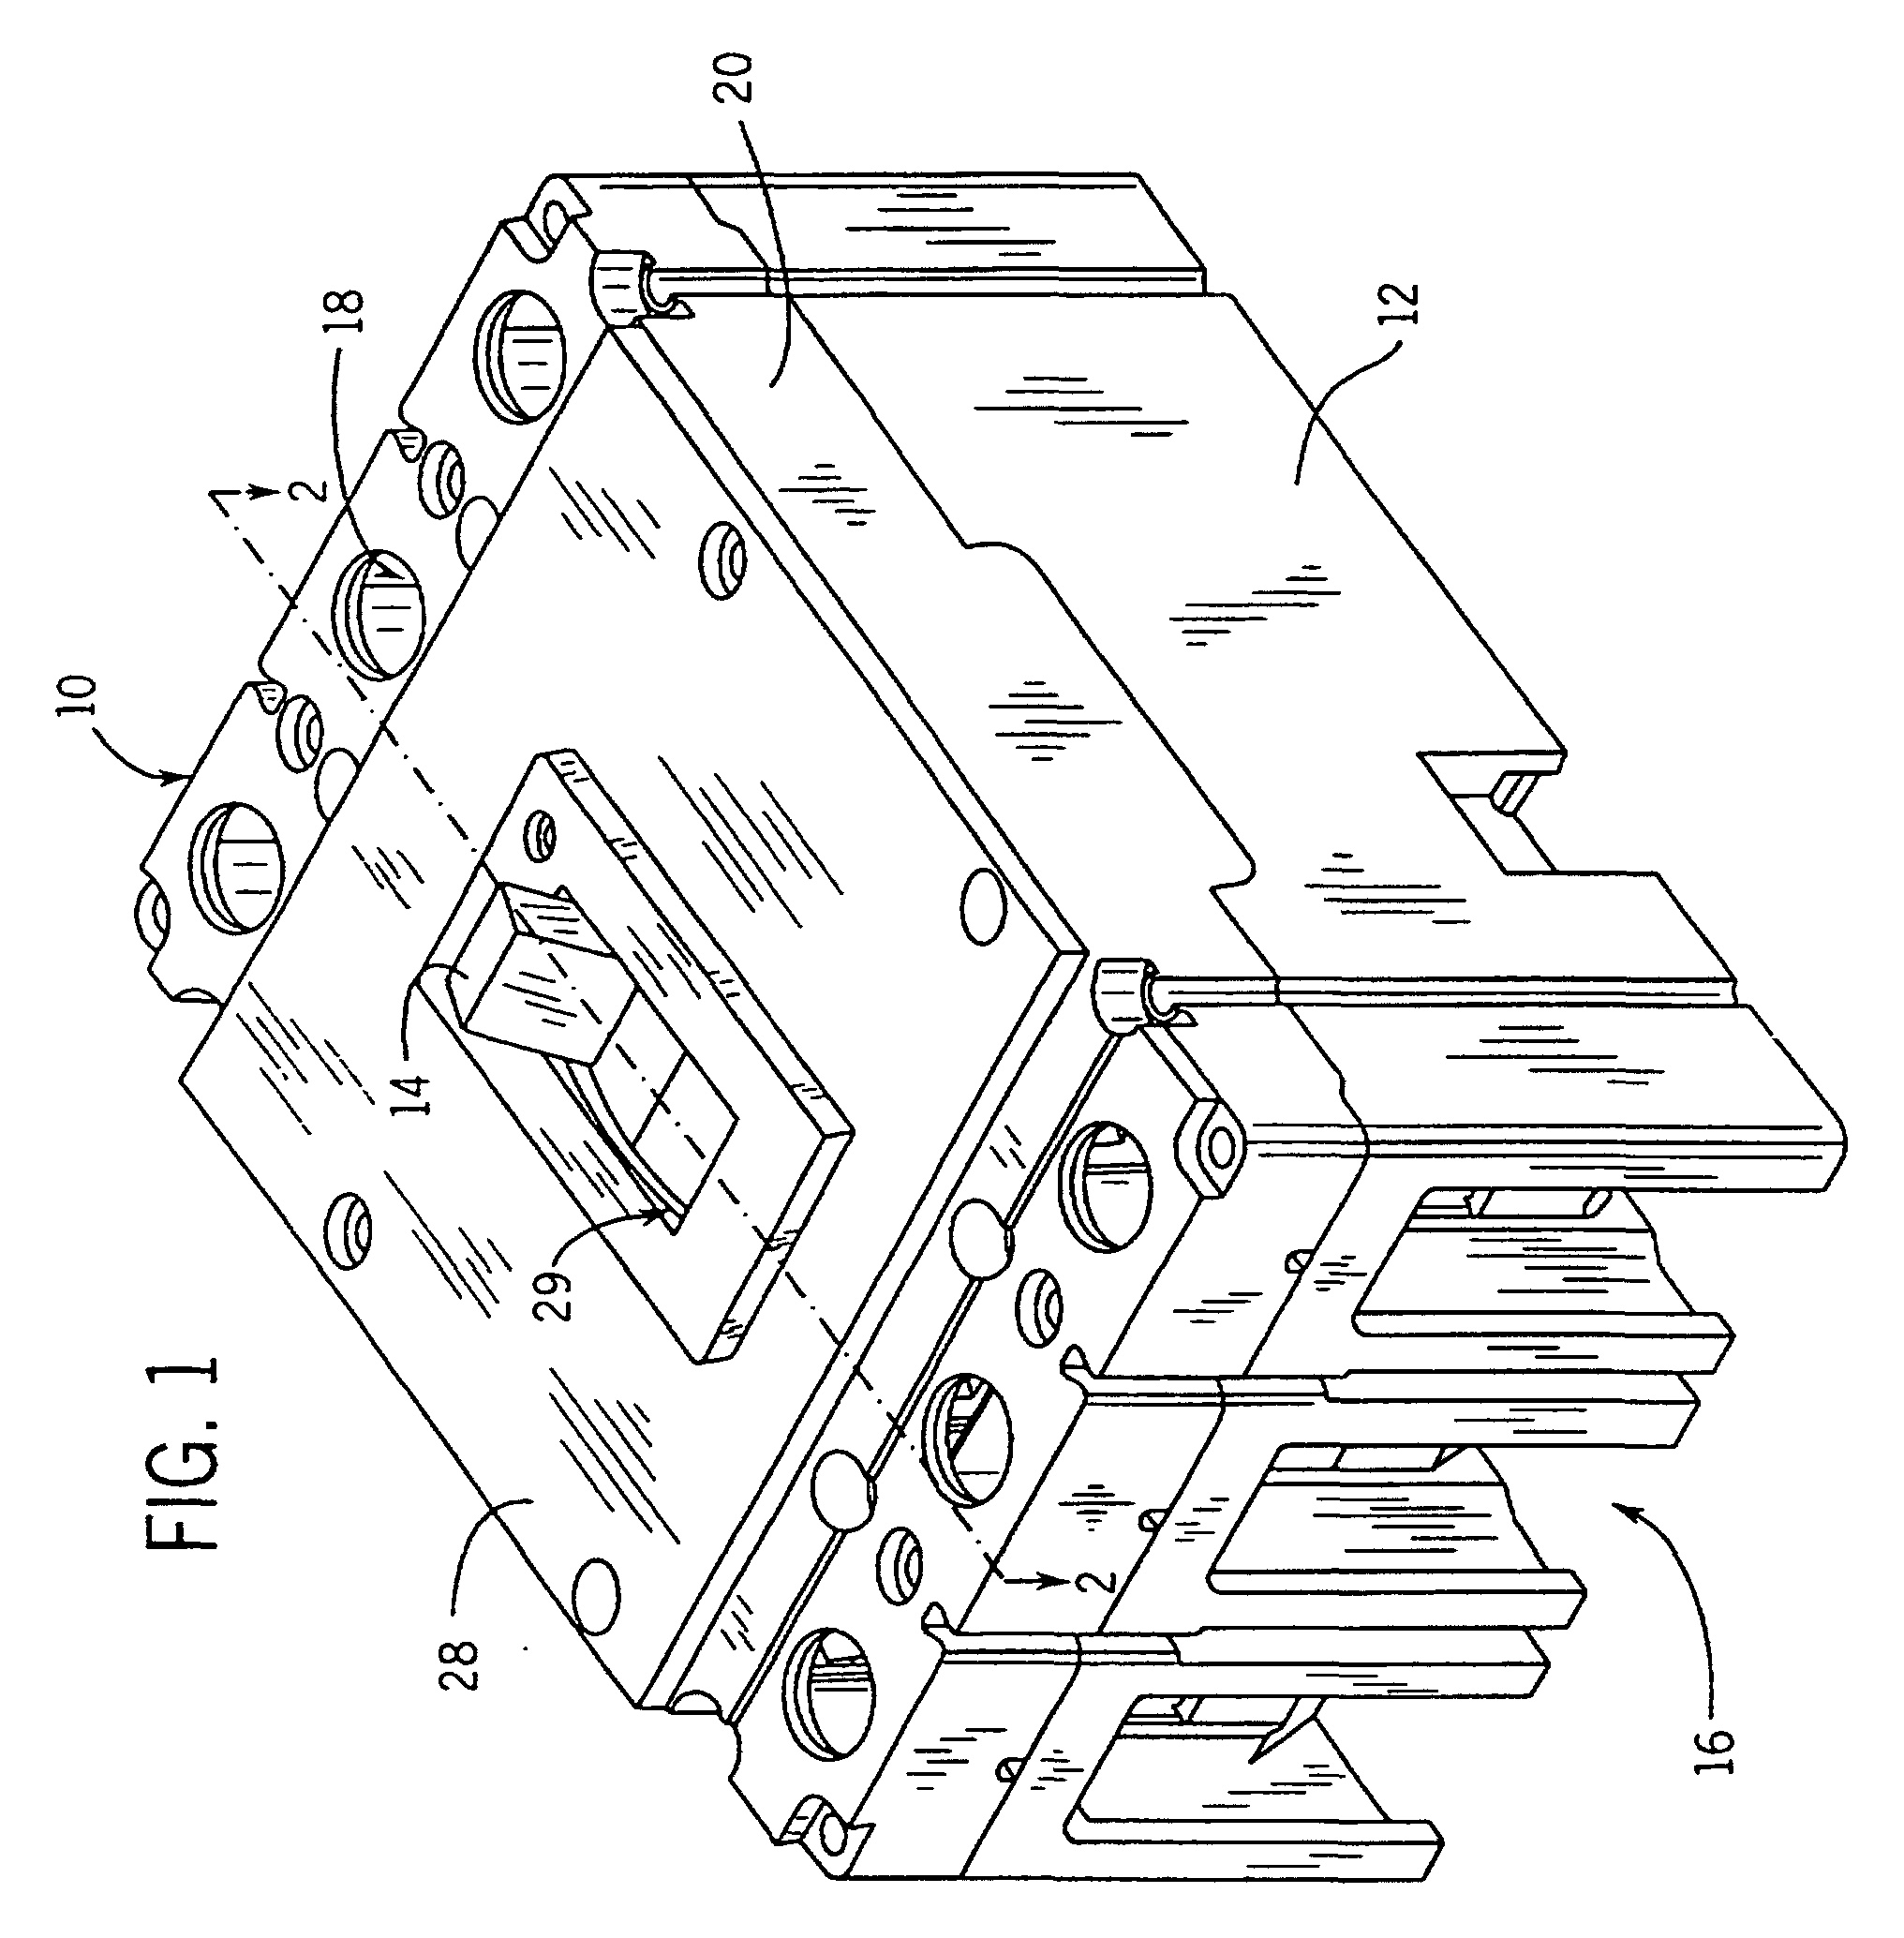 patent ep1098344b1 - shunt trip device for a molded case circuit breaker